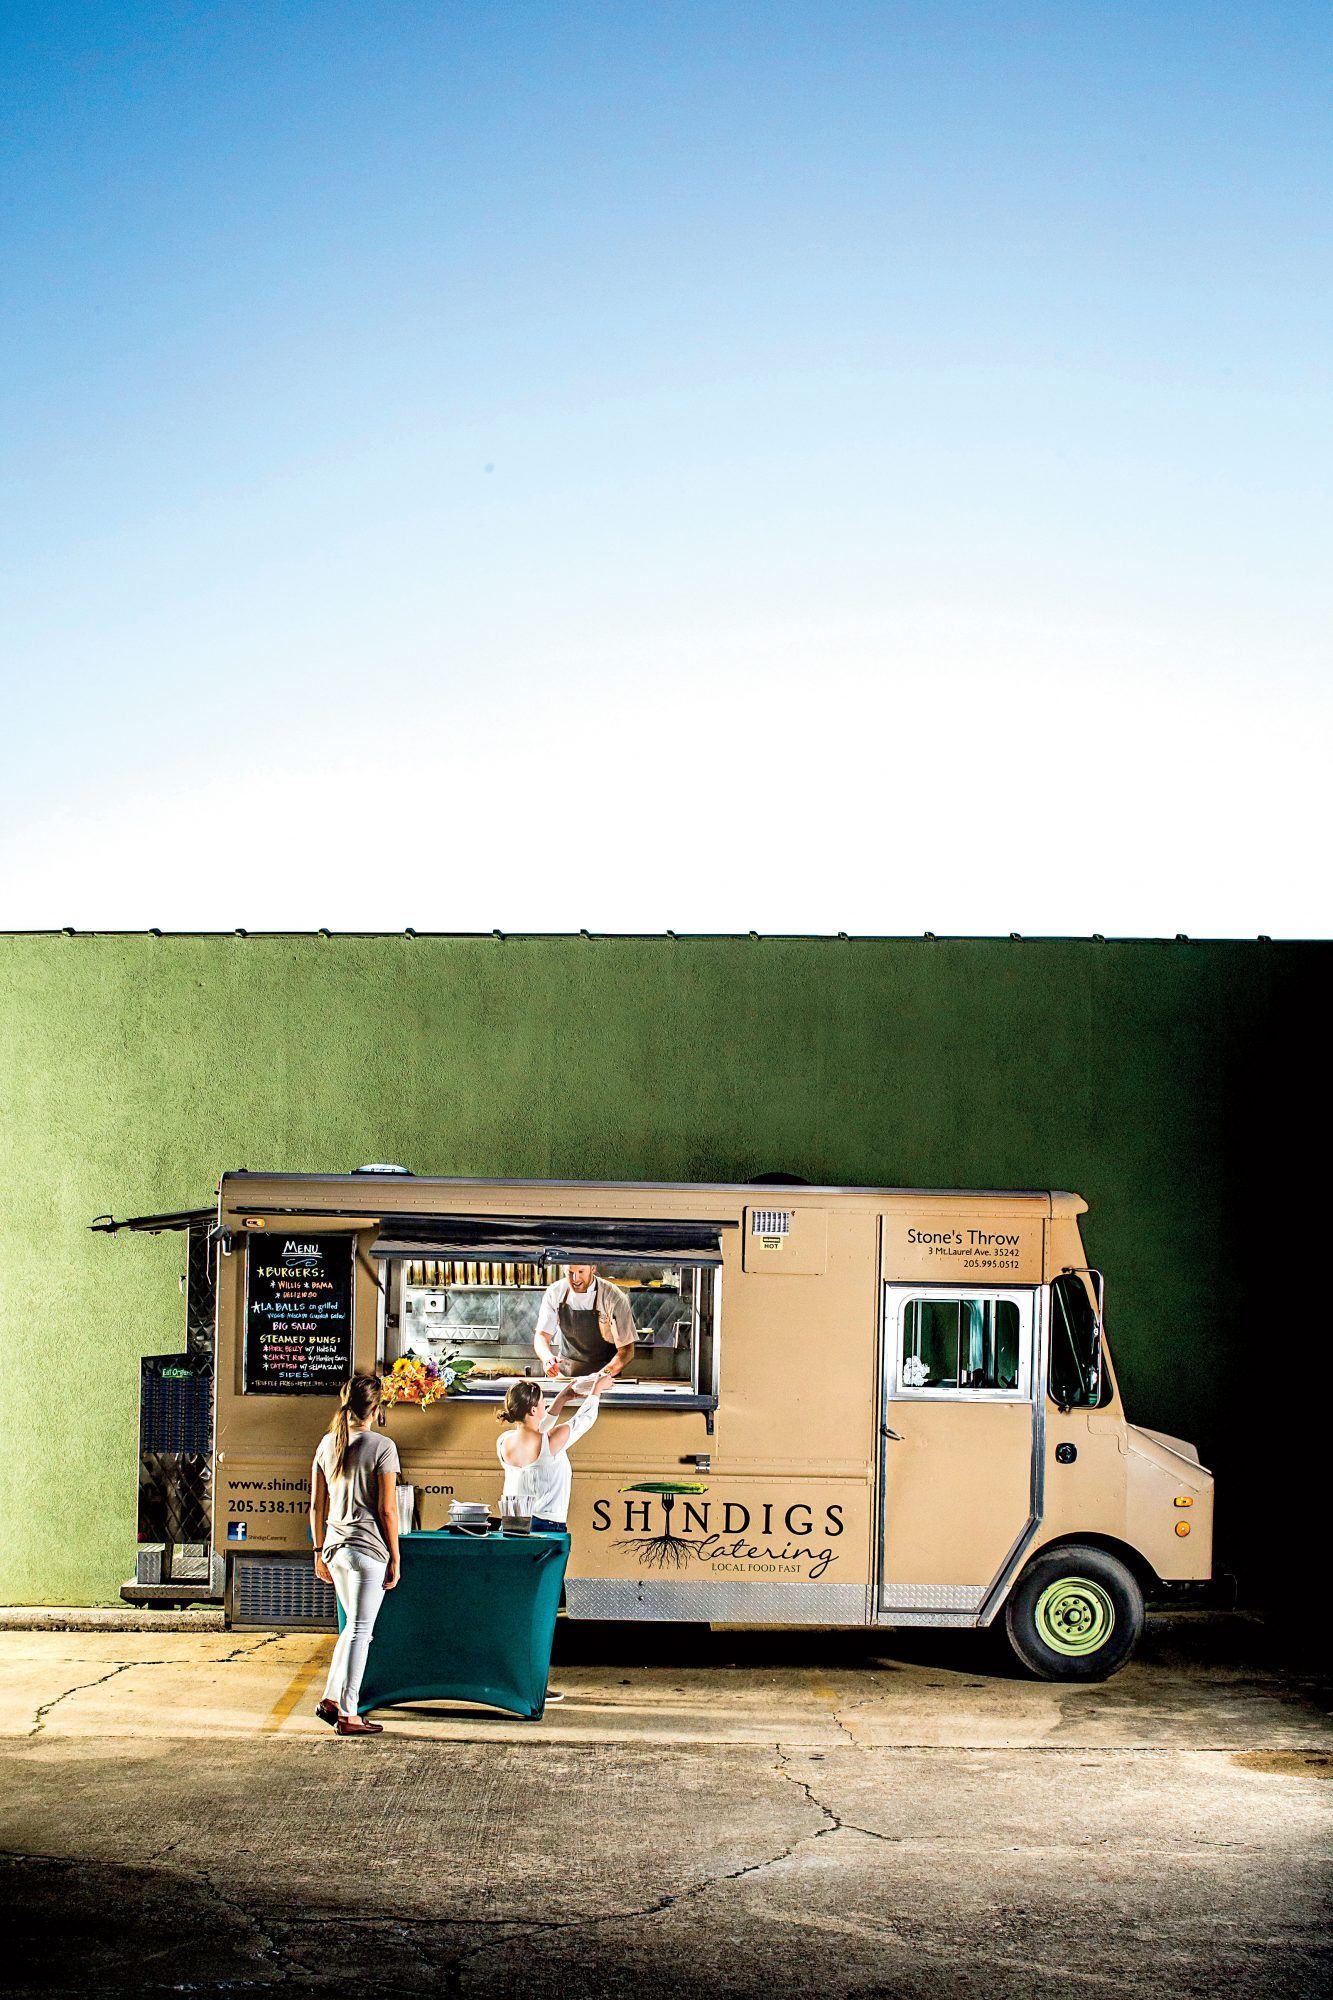 Shindigs Food Truck